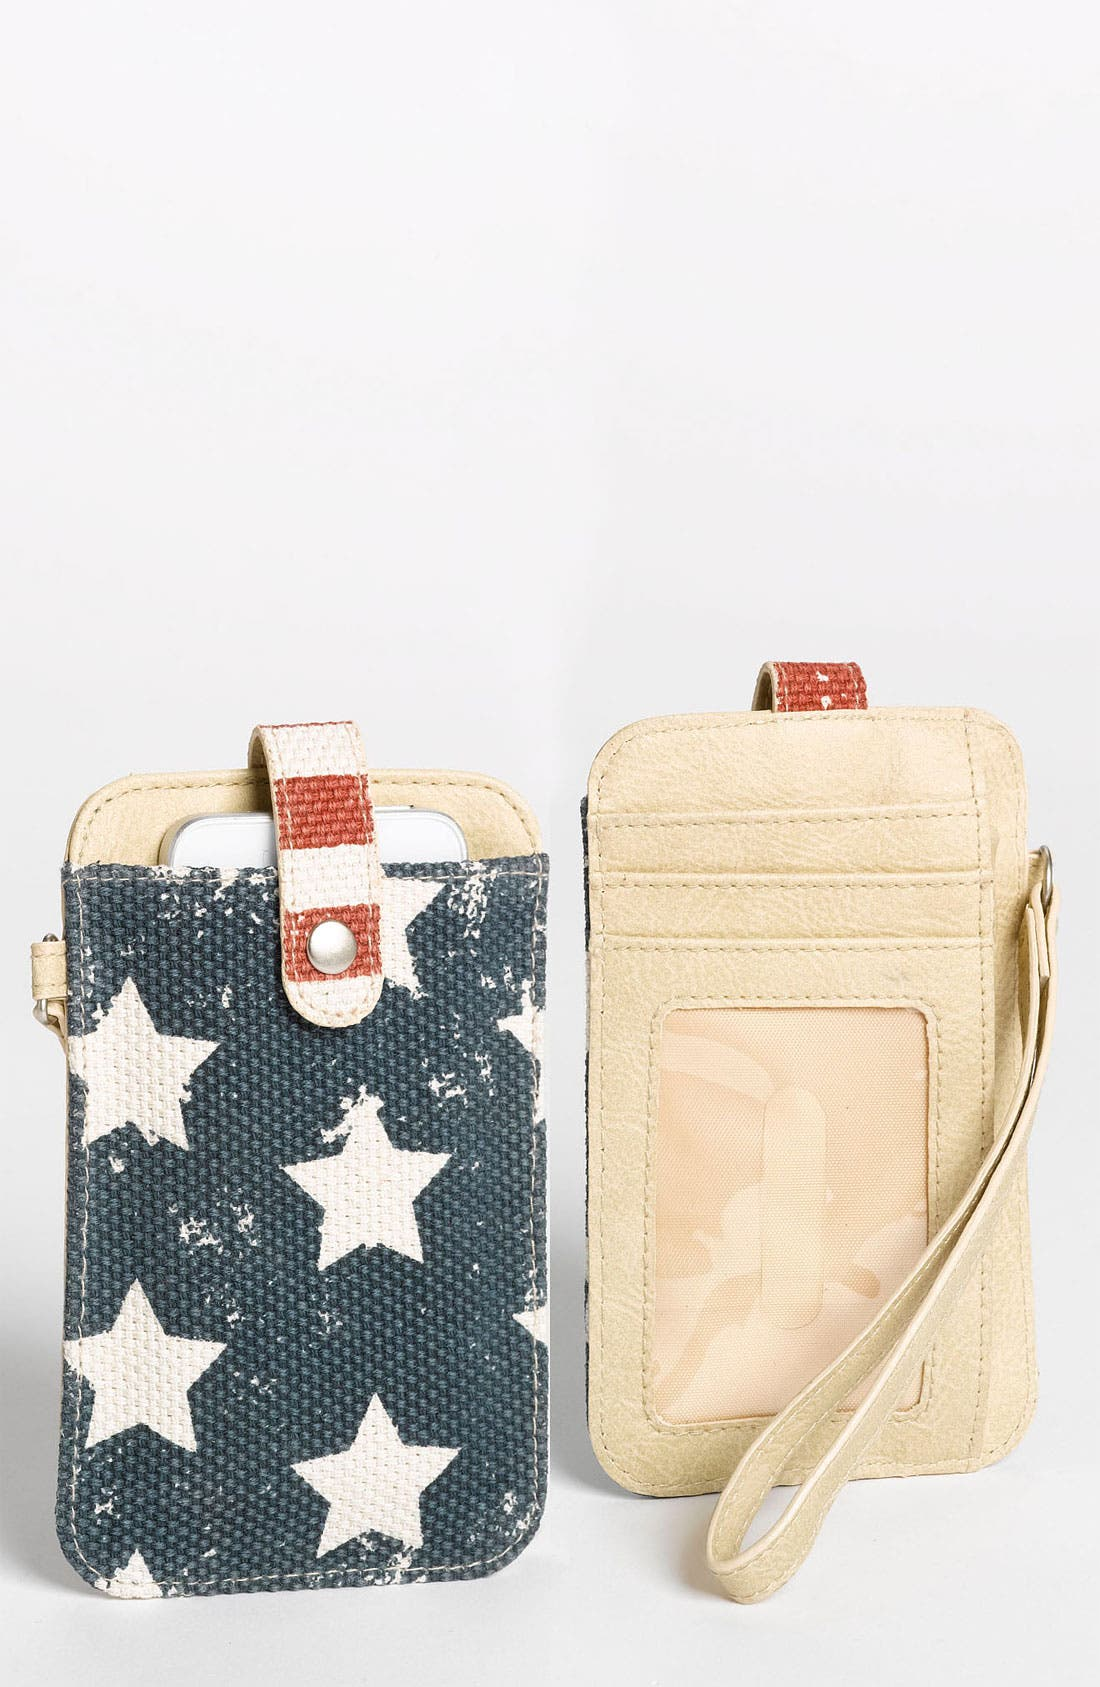 Main Image - T-shirt & Jeans 'American' Smartphone Wallet Case